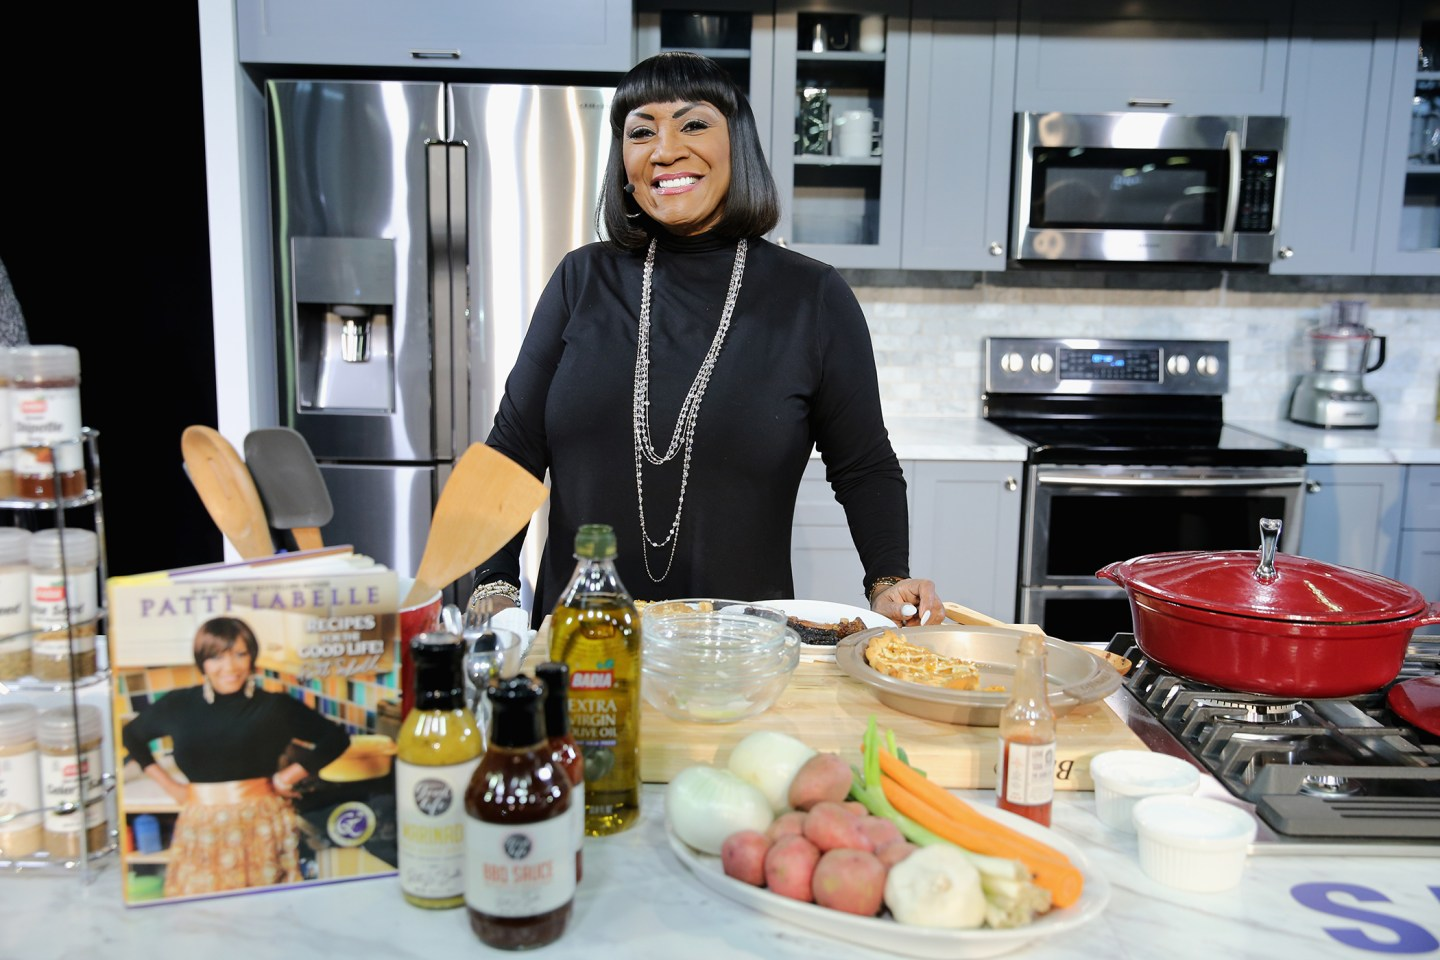 Patti-Labelle-Cooking-1440x960 Black Women and Our Legacy of Making Others Feel Comfortable in our Homes